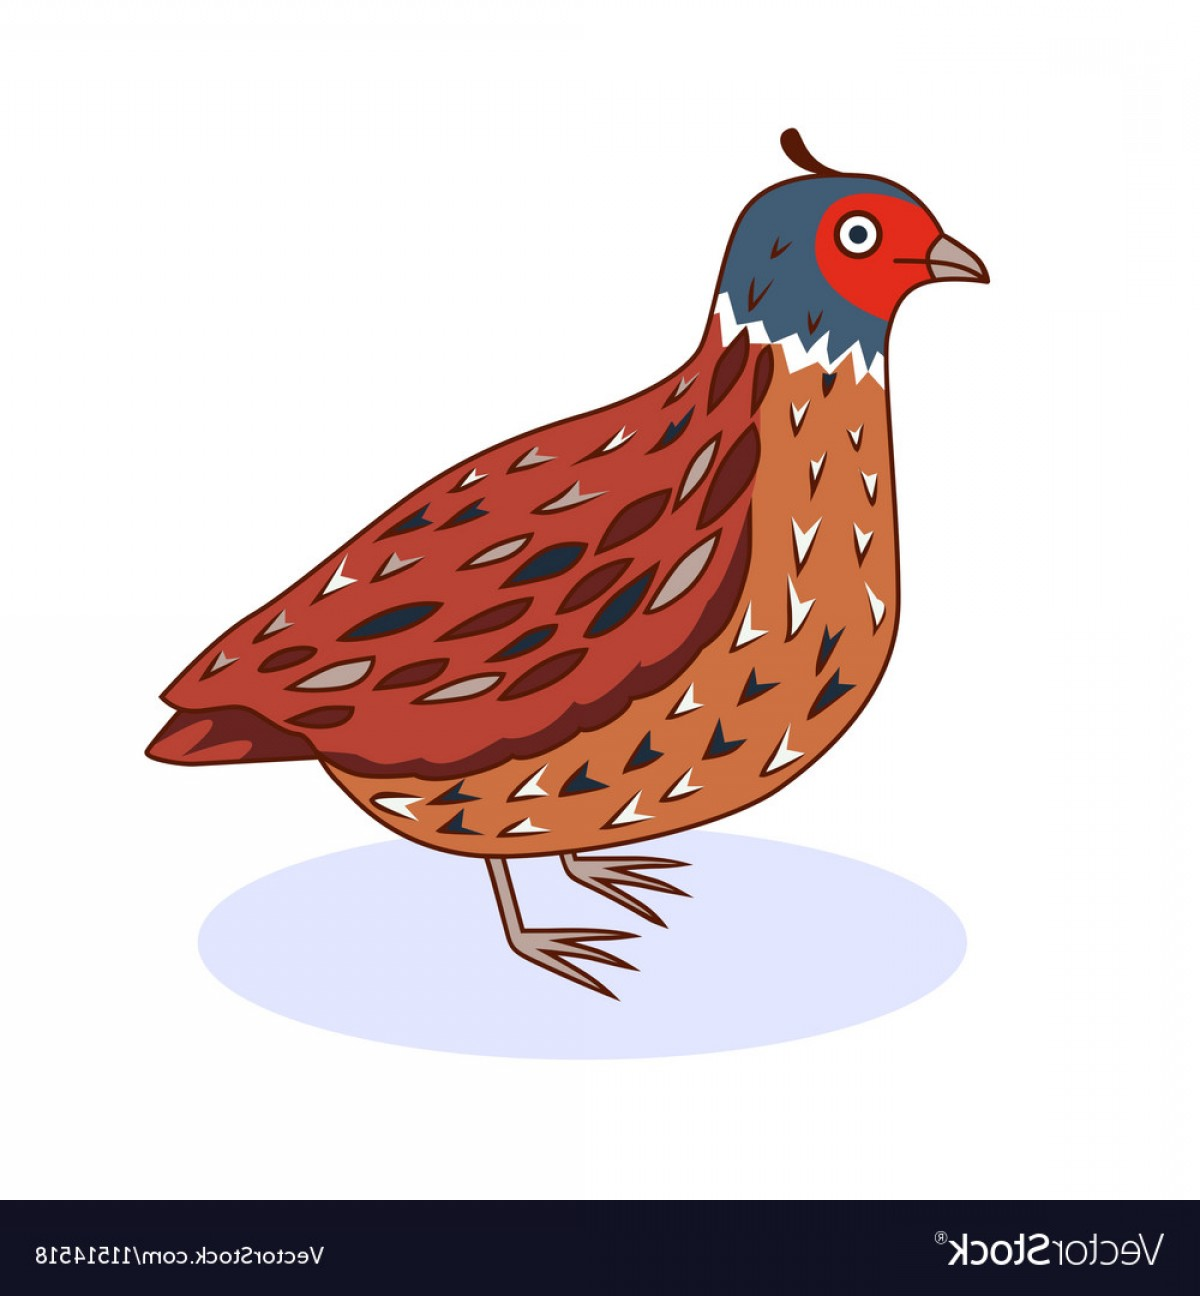 Quail Vector Art: A Bird California Quail Vector